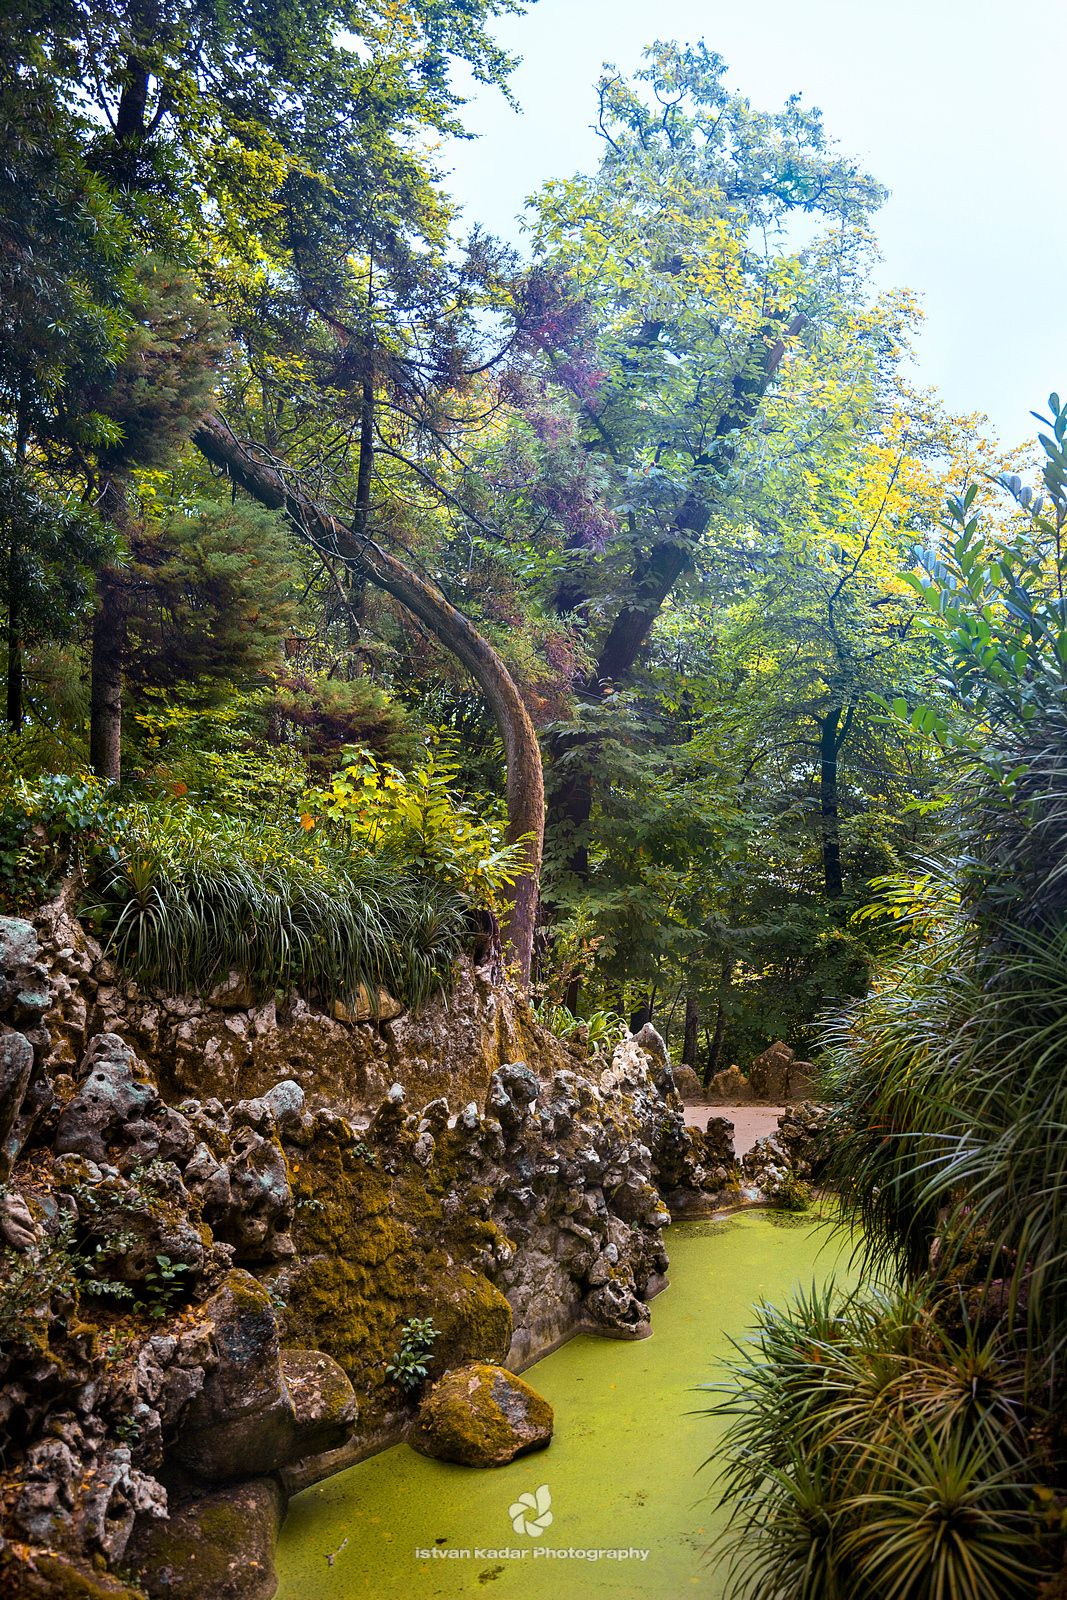 The Gardens of Quinta da Regaleira, Sintra - The lush vegetation found in the gardens of Quinta da Regaleira seems to embrace the architecture, suggesting the harmonious existence of the natural and the man-made. There's an intriguing symbiosis here. As you emerge from dark tunnels, cross stepping-stone ponds, or feel the spray from water cascading over rockeries – you feel a sense of unity.